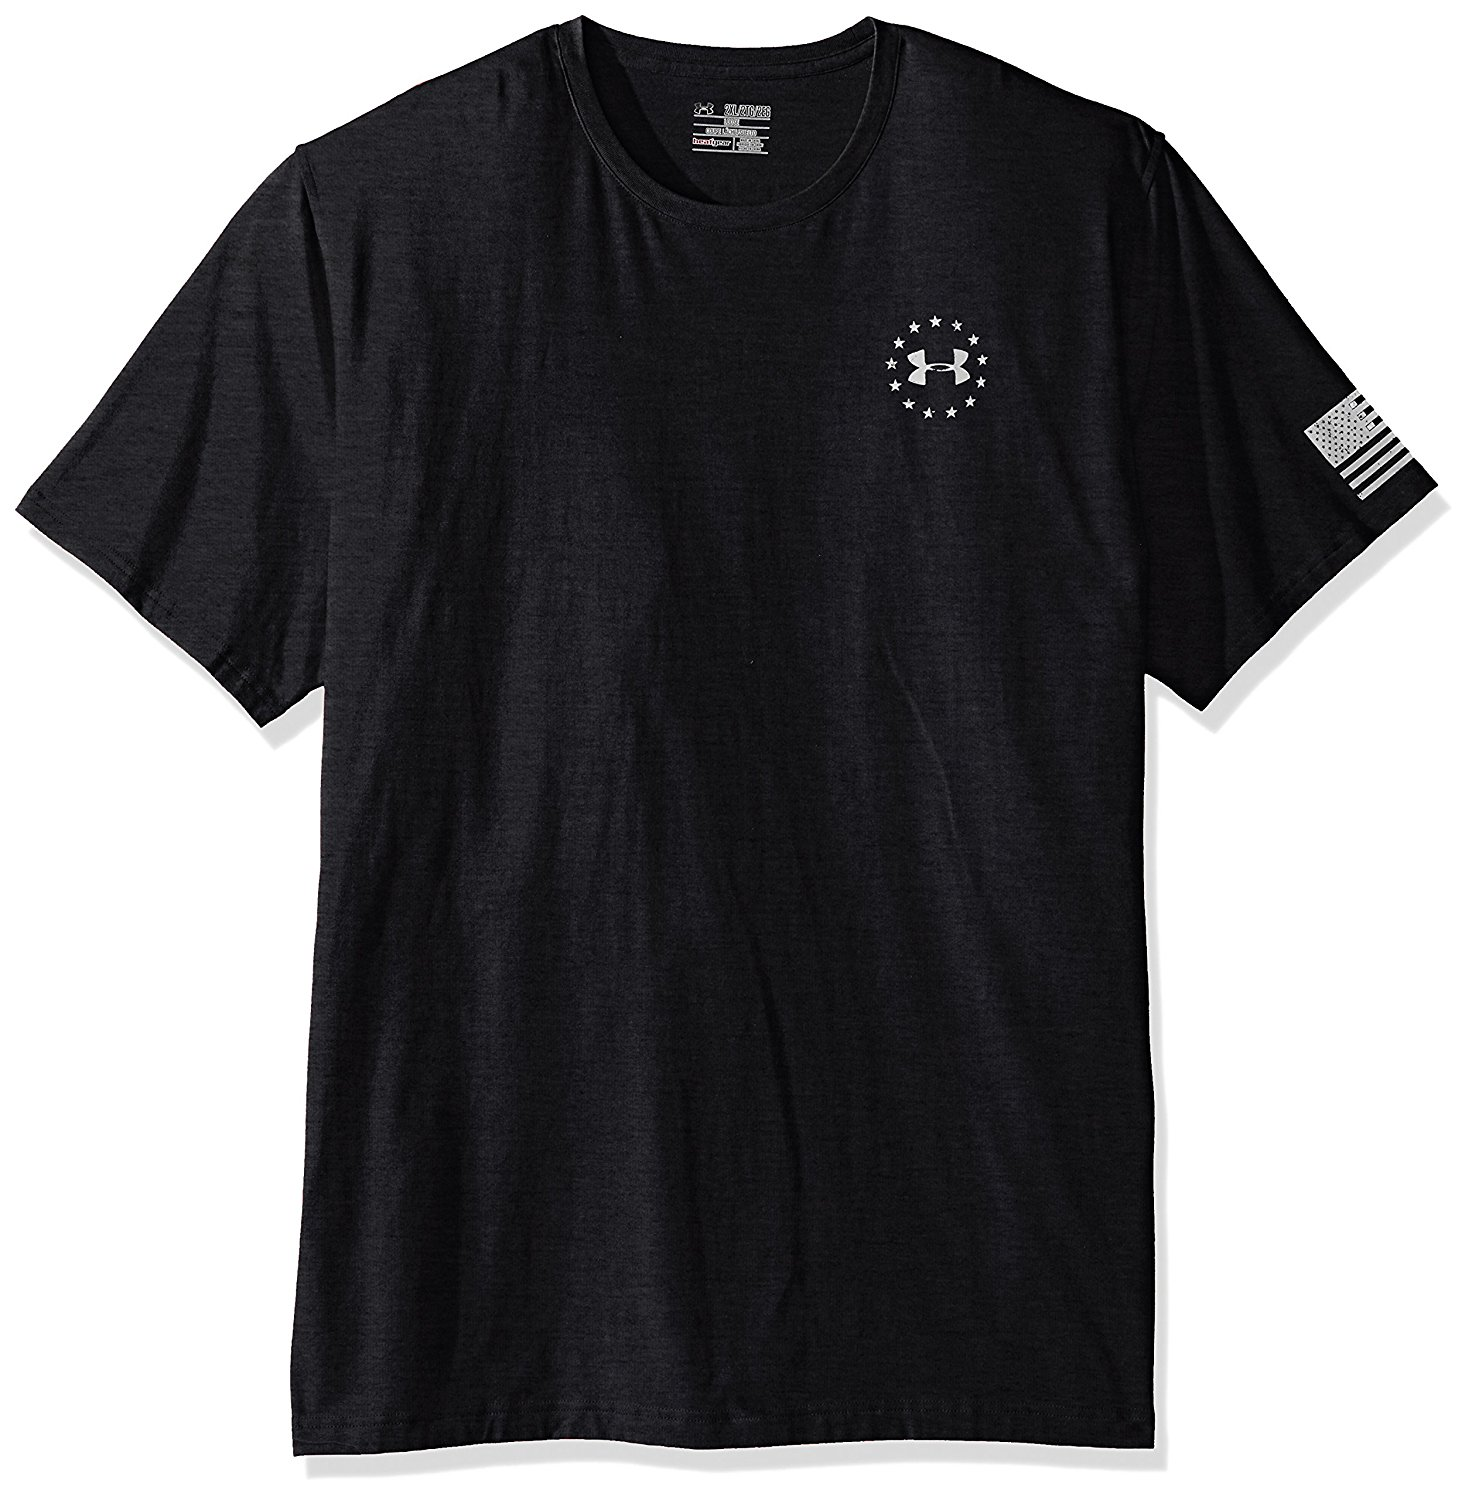 Under Armour Freedom Flag Mens Tactical Graphic T-Shirt Black White X-large by Under Armour